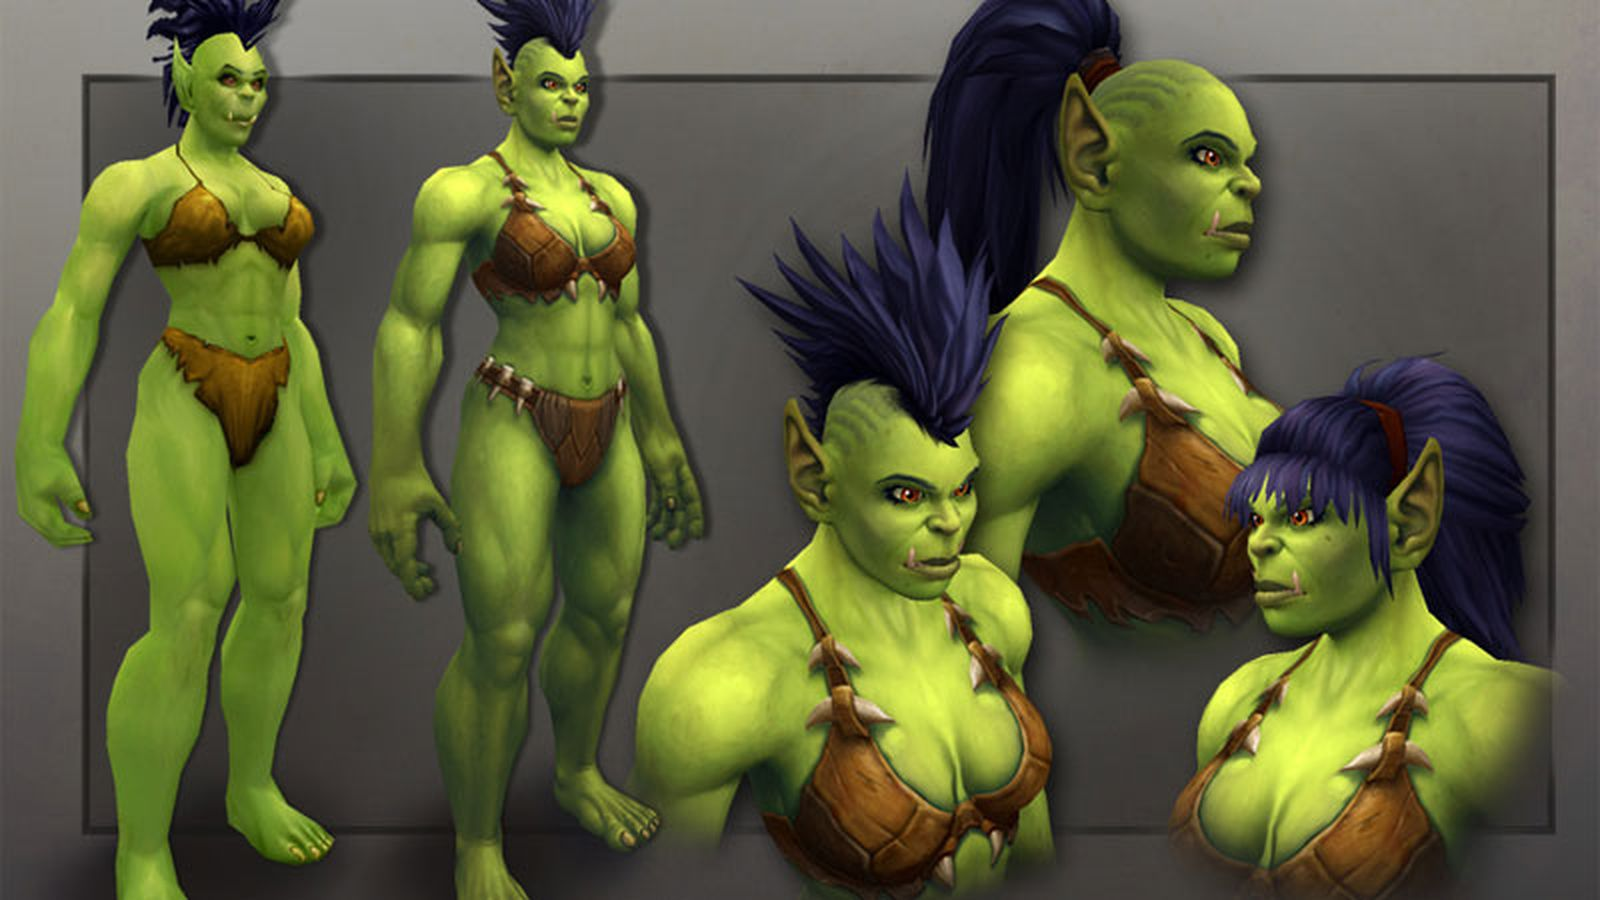 World of Warcraft draenie porn videos nackt clips